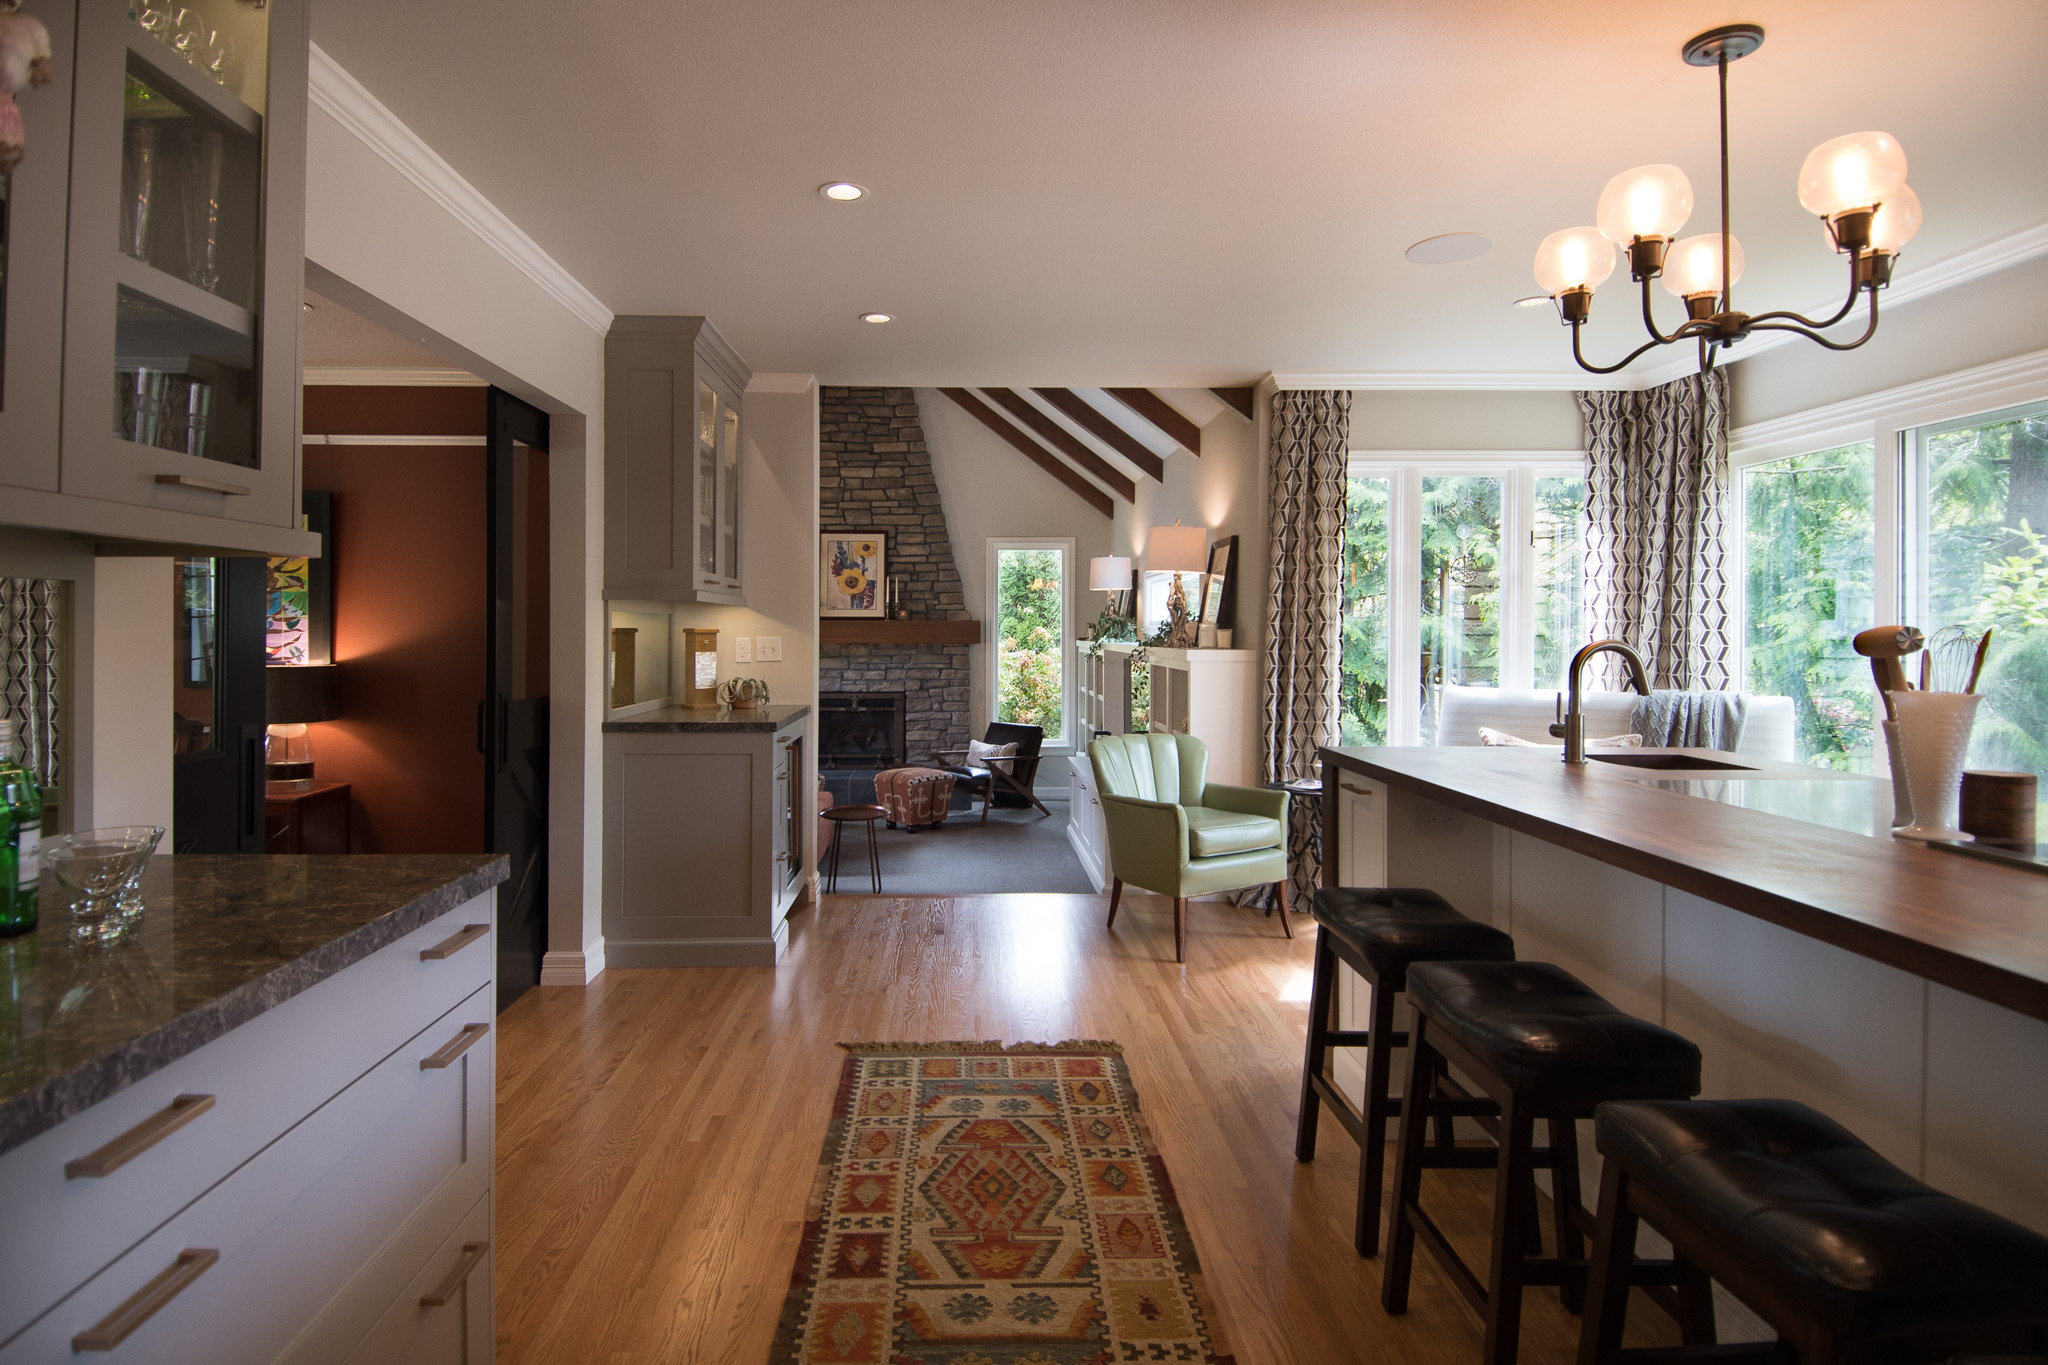 Lord Interior Design - Opening Up The Kitchen-10.jpg